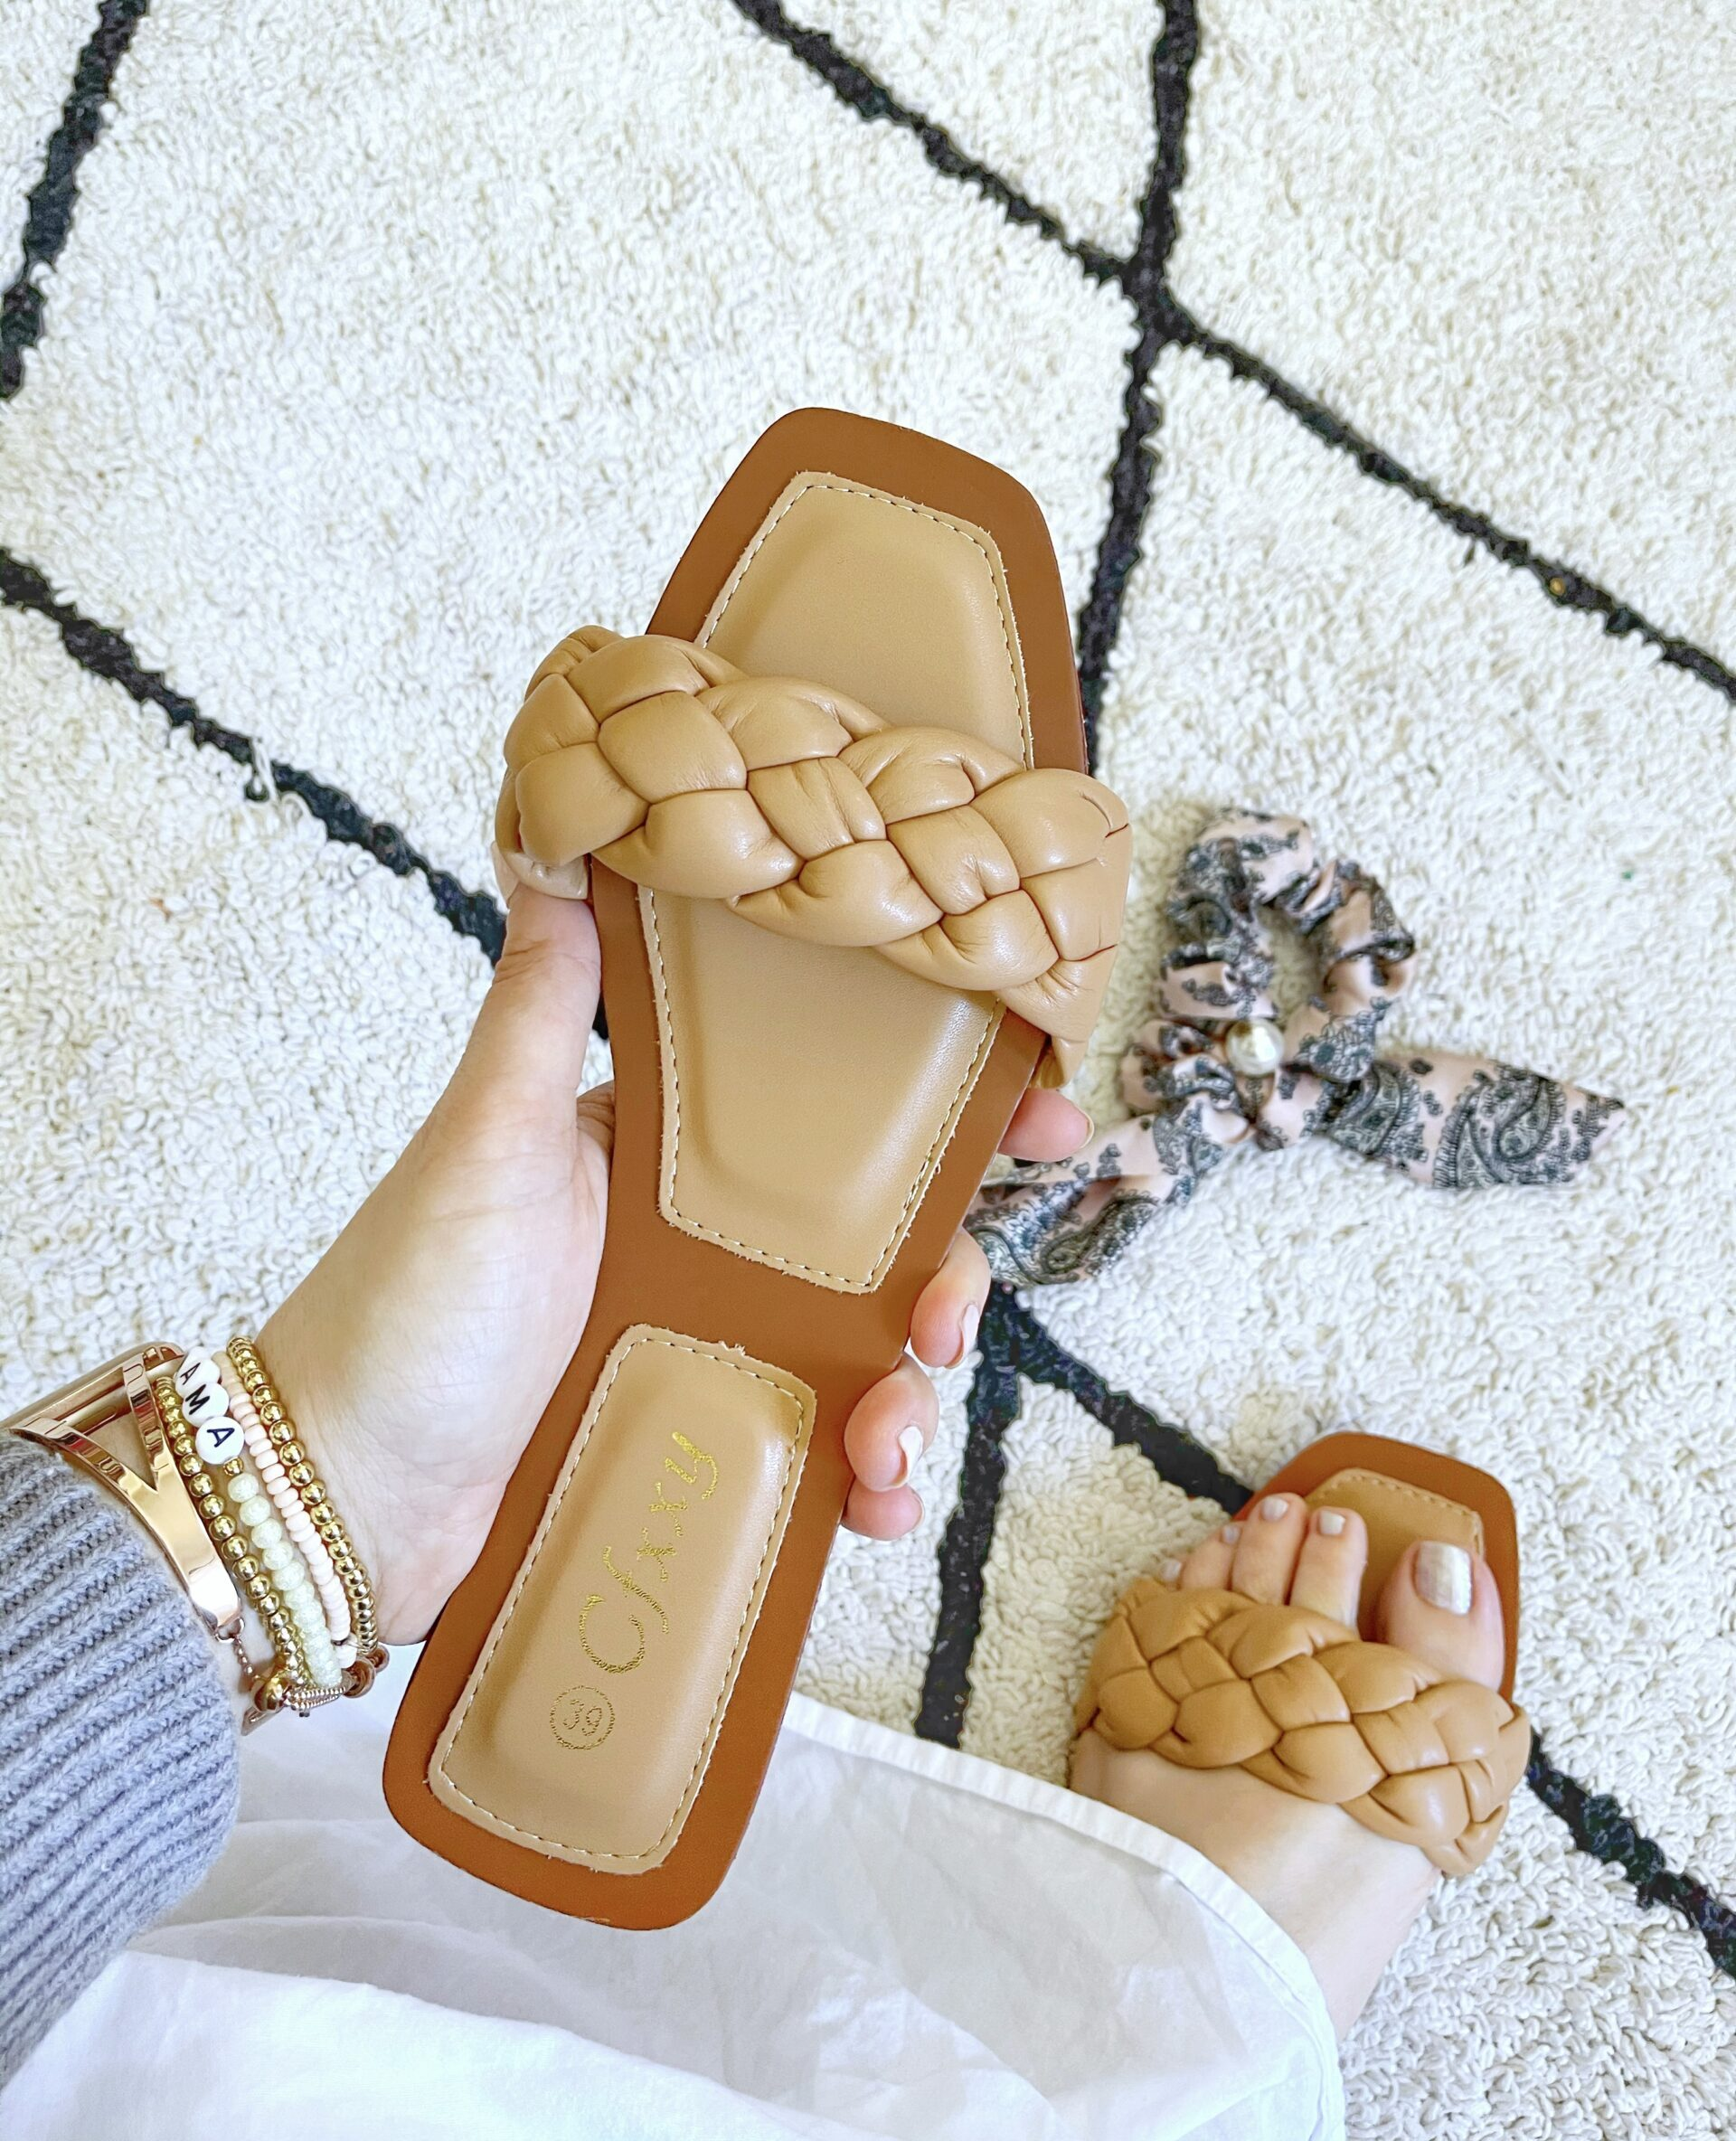 brown or nude Amazon Braided Slides for Spring Sandals